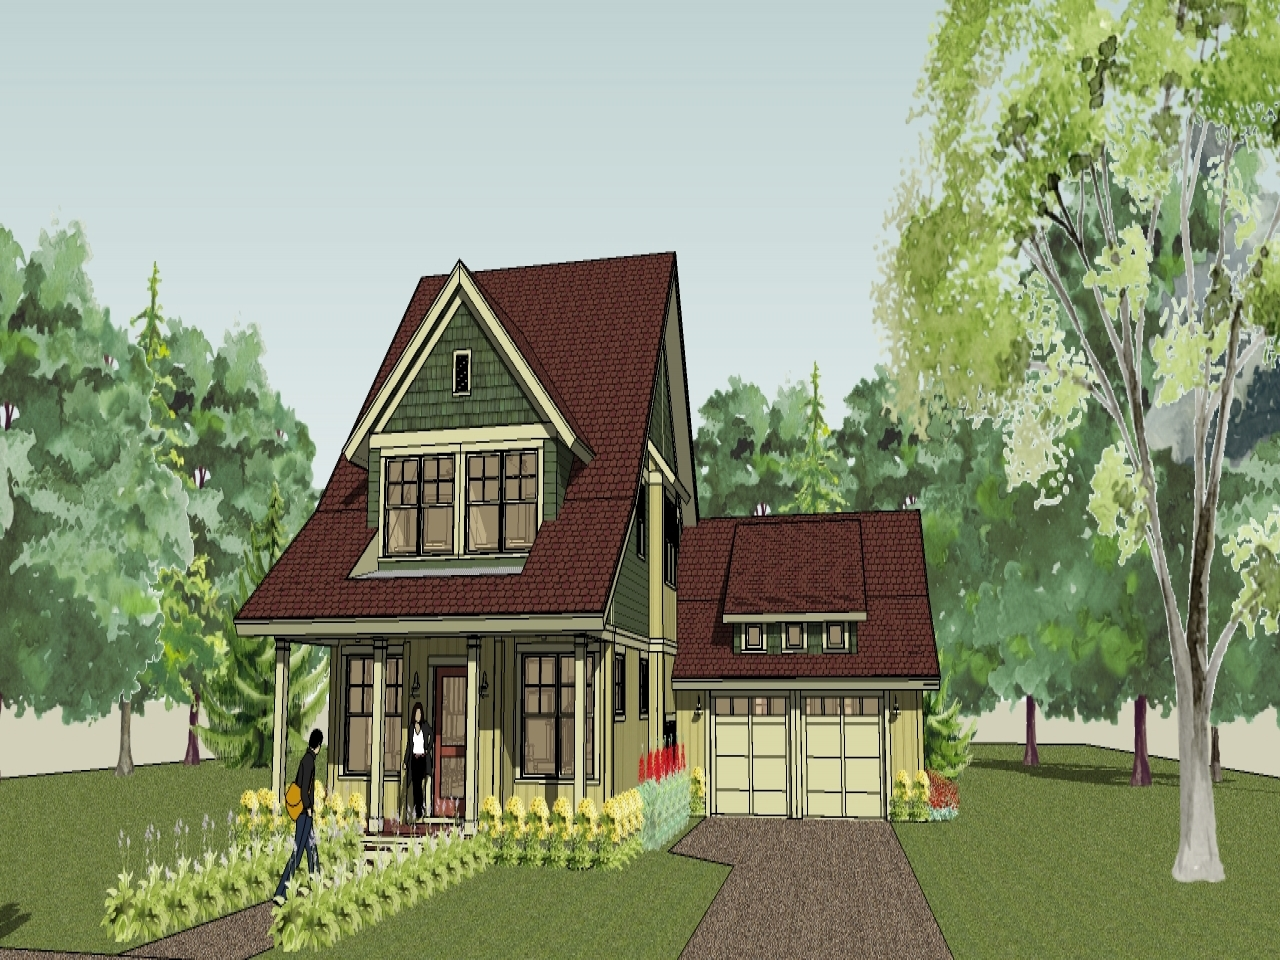 Country cottage house plans bungalow cottage house plans for Bungalow house kits